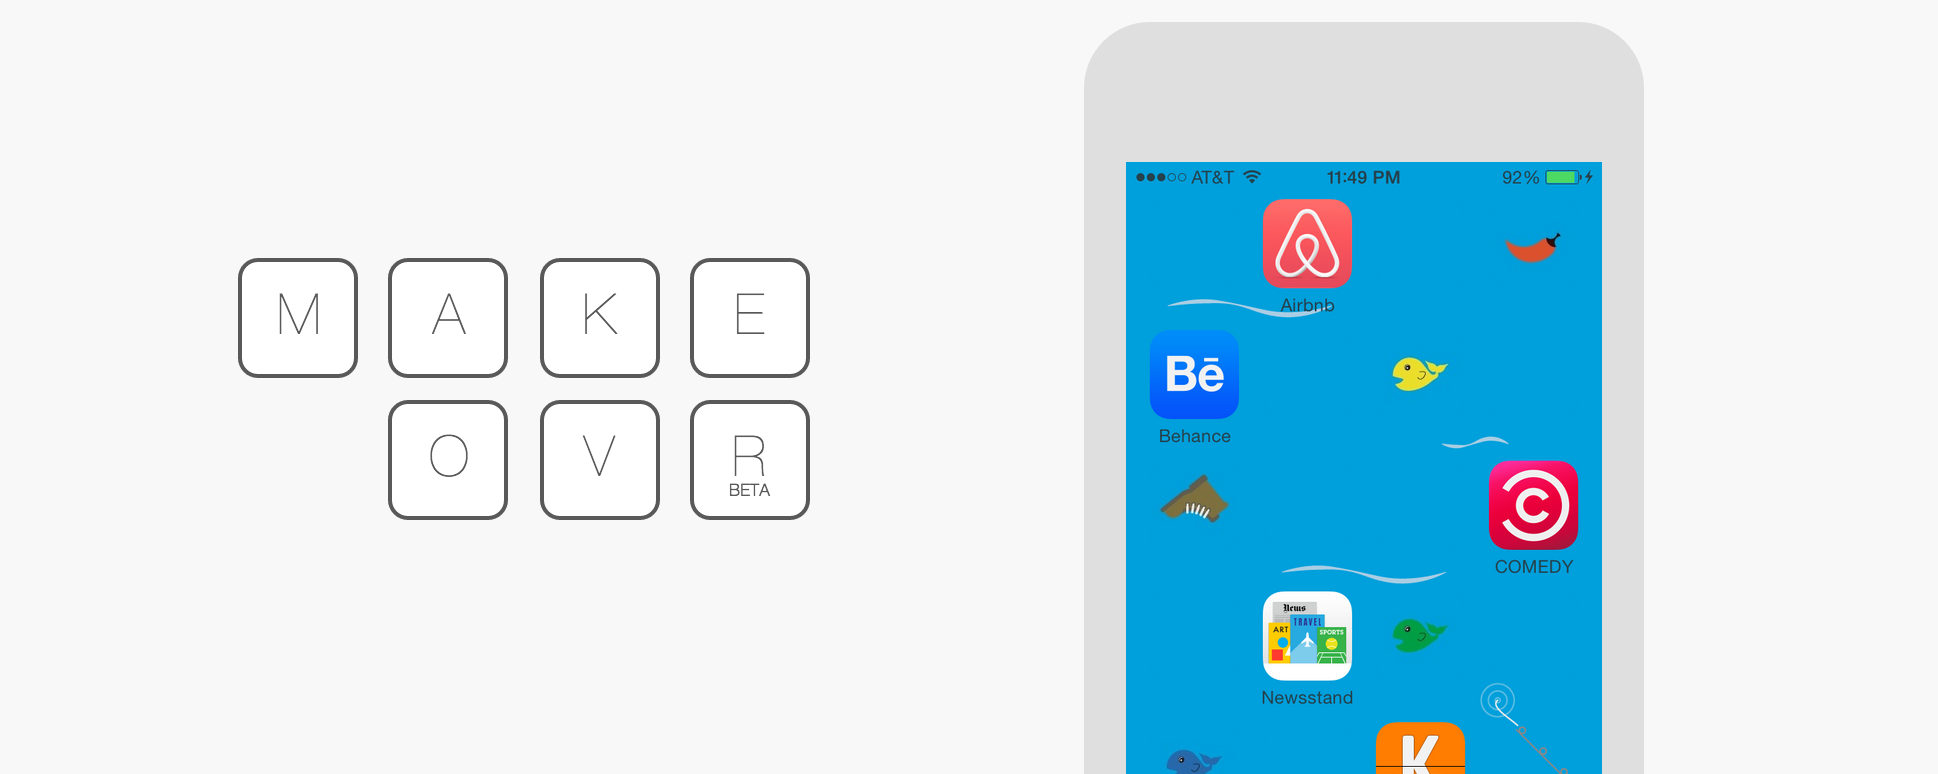 Arrange Your iPhone Icons Any Way You Want With Makeovr